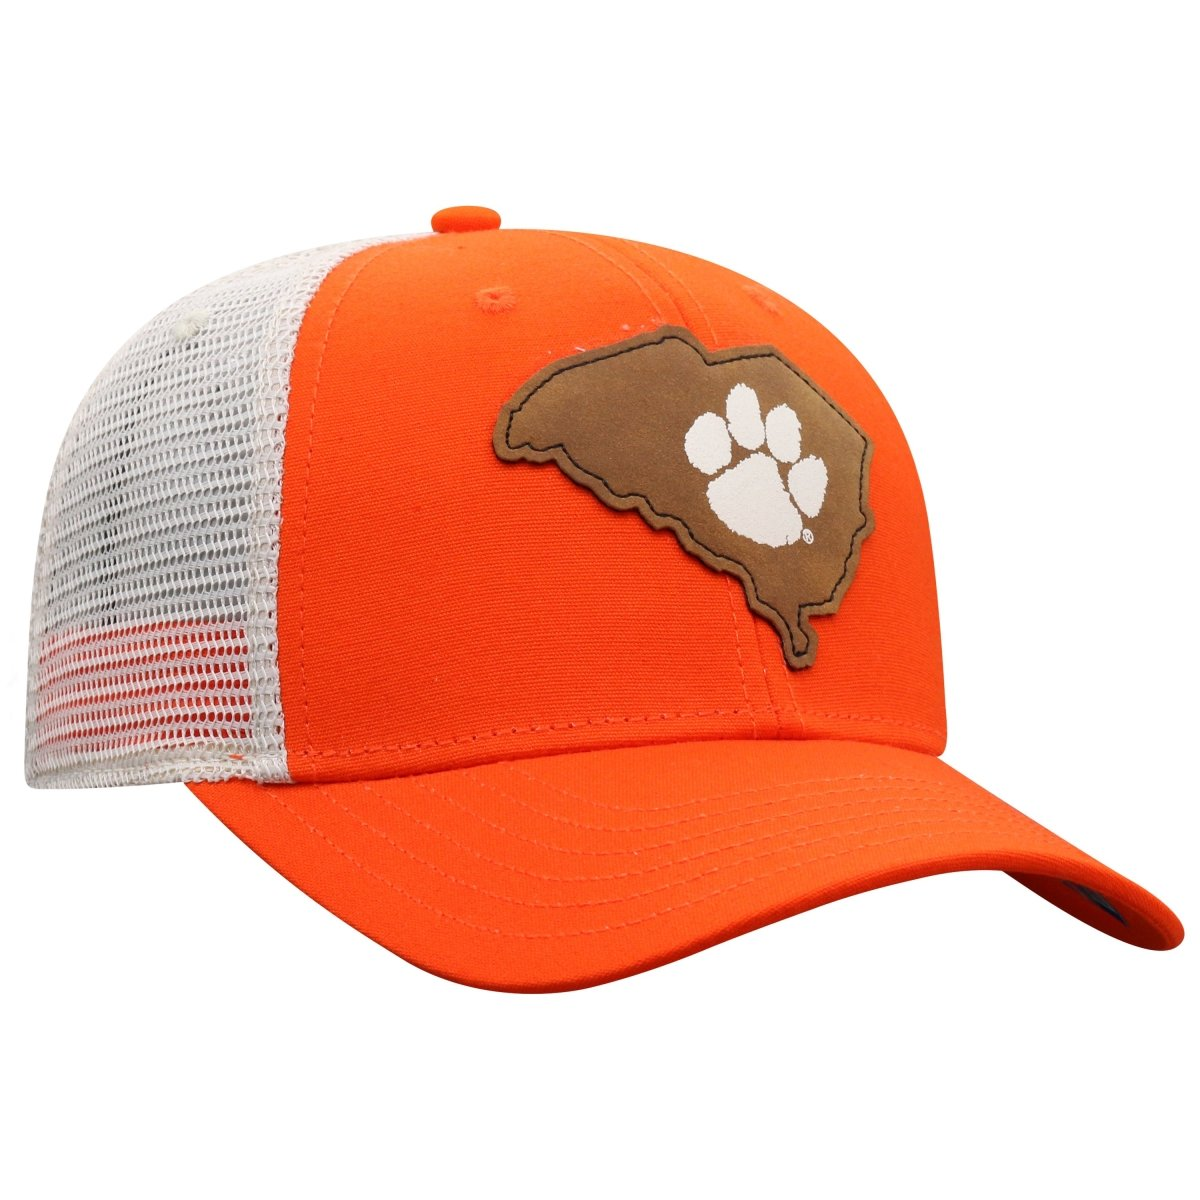 Top of the World Clemson Precise Trucker Hat With Leather State Patch - Mr. Knickerbocker